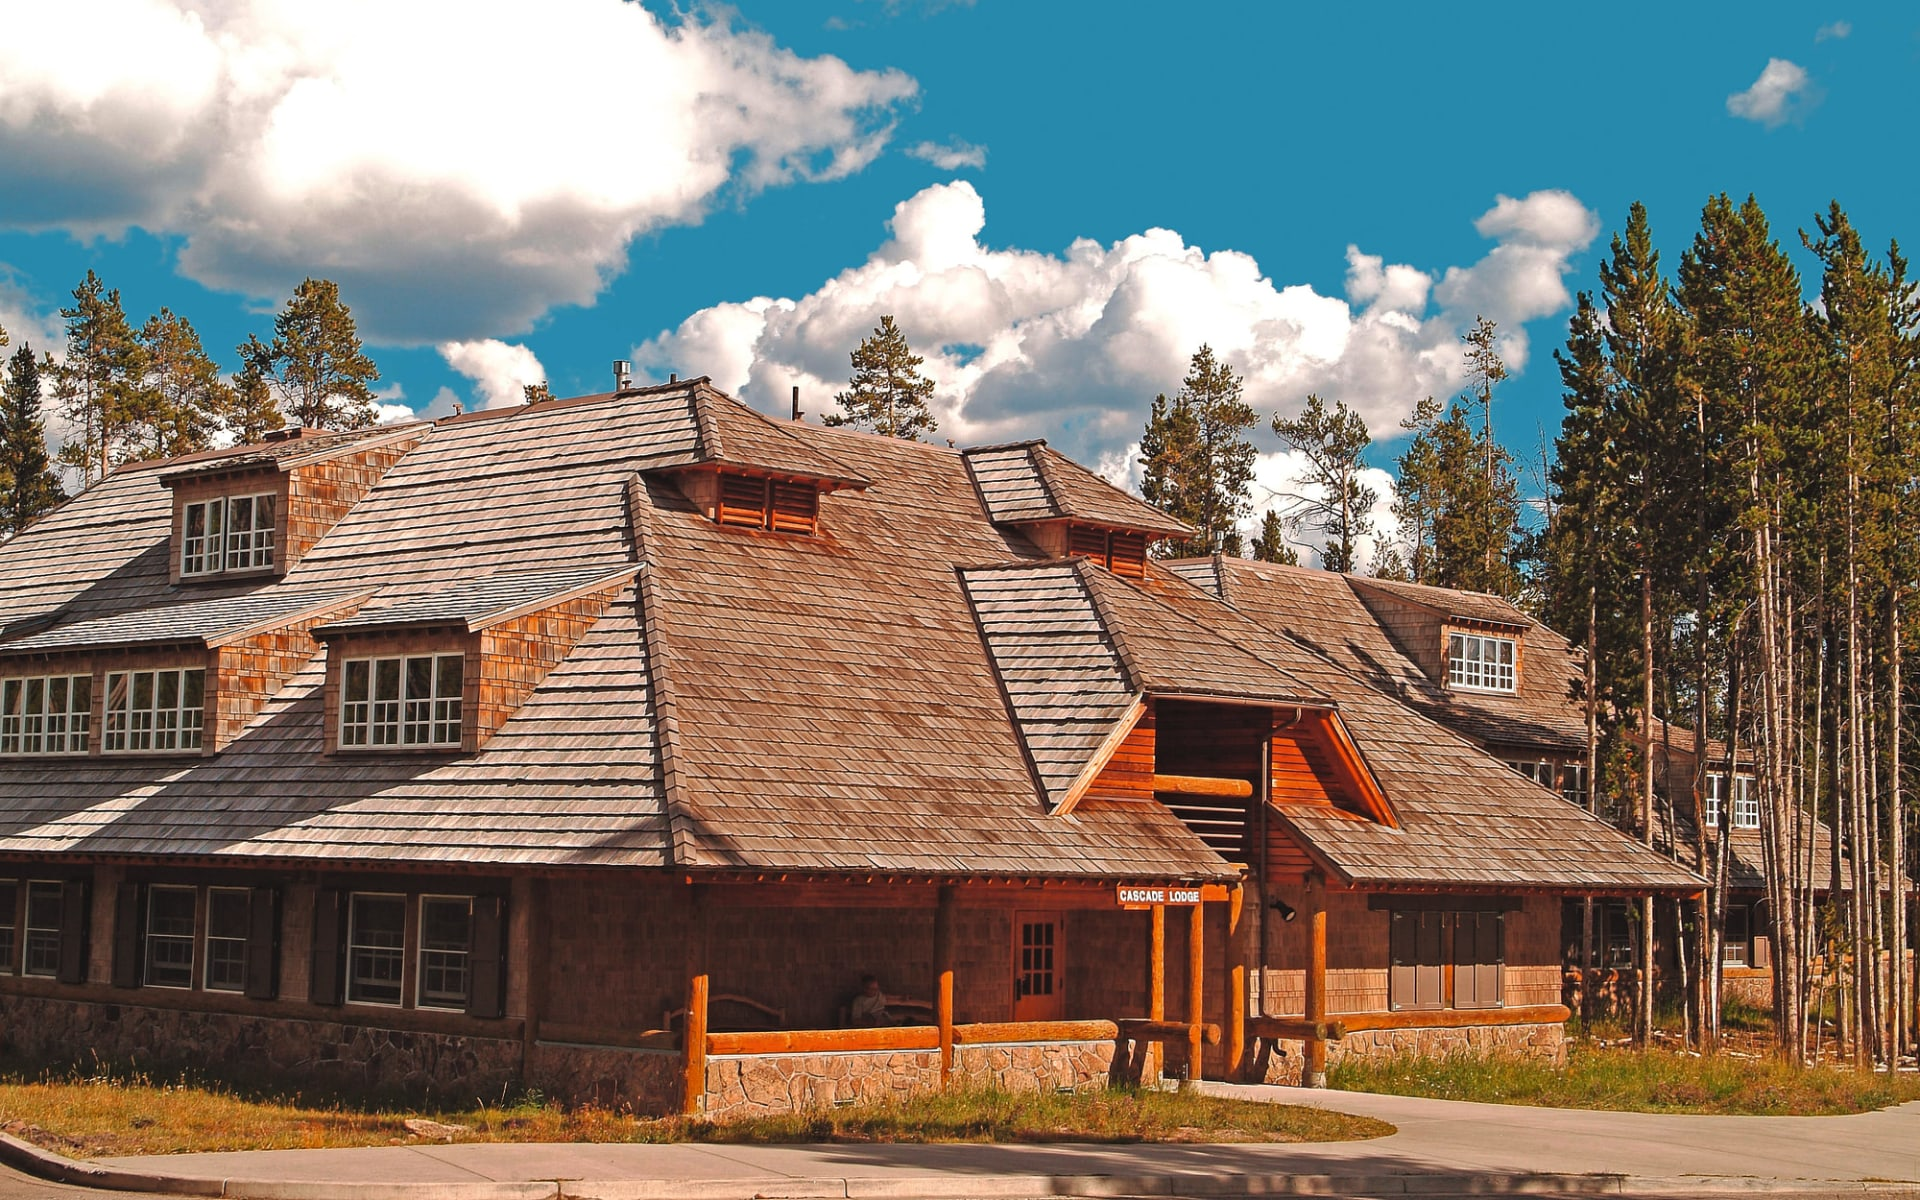 Canyon Lodge and Cabins in Yellowstone National Park: Canyon Lodge_Aussenansicht 2_RMHT